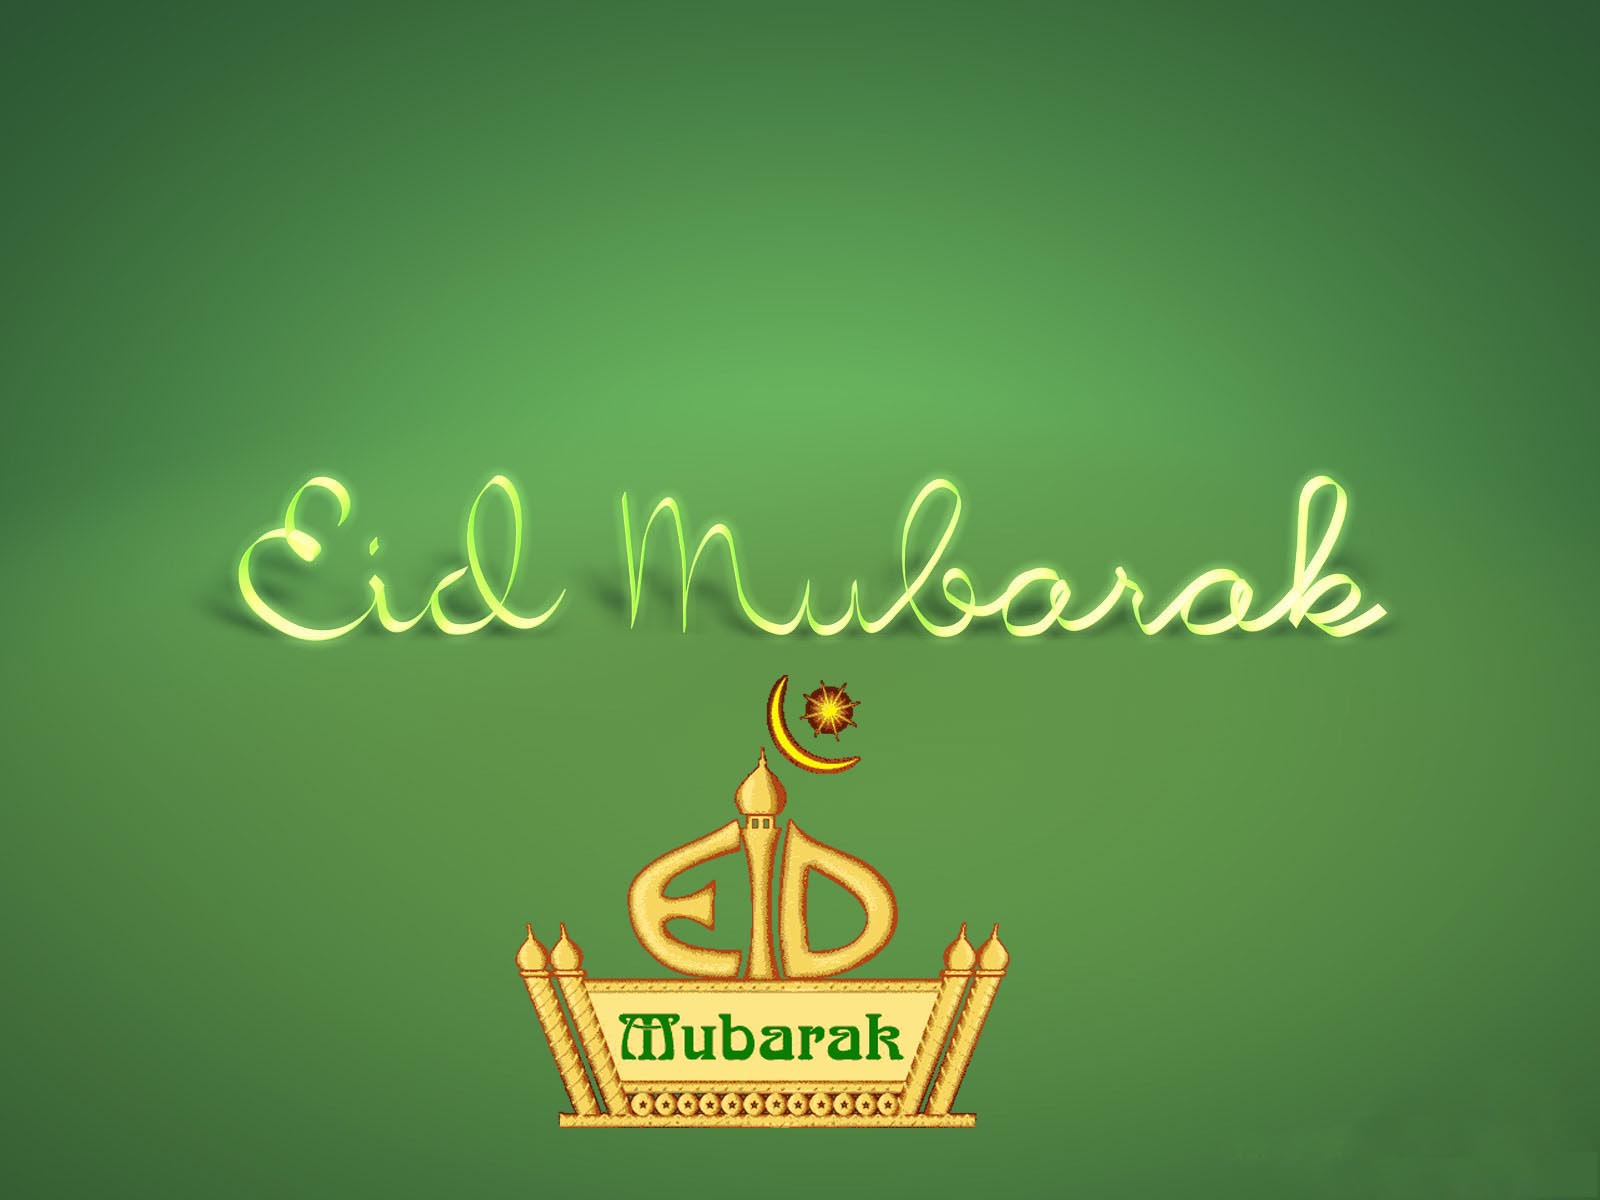 Eid ul Adha Greetings Facebook Cover Banner Pictures